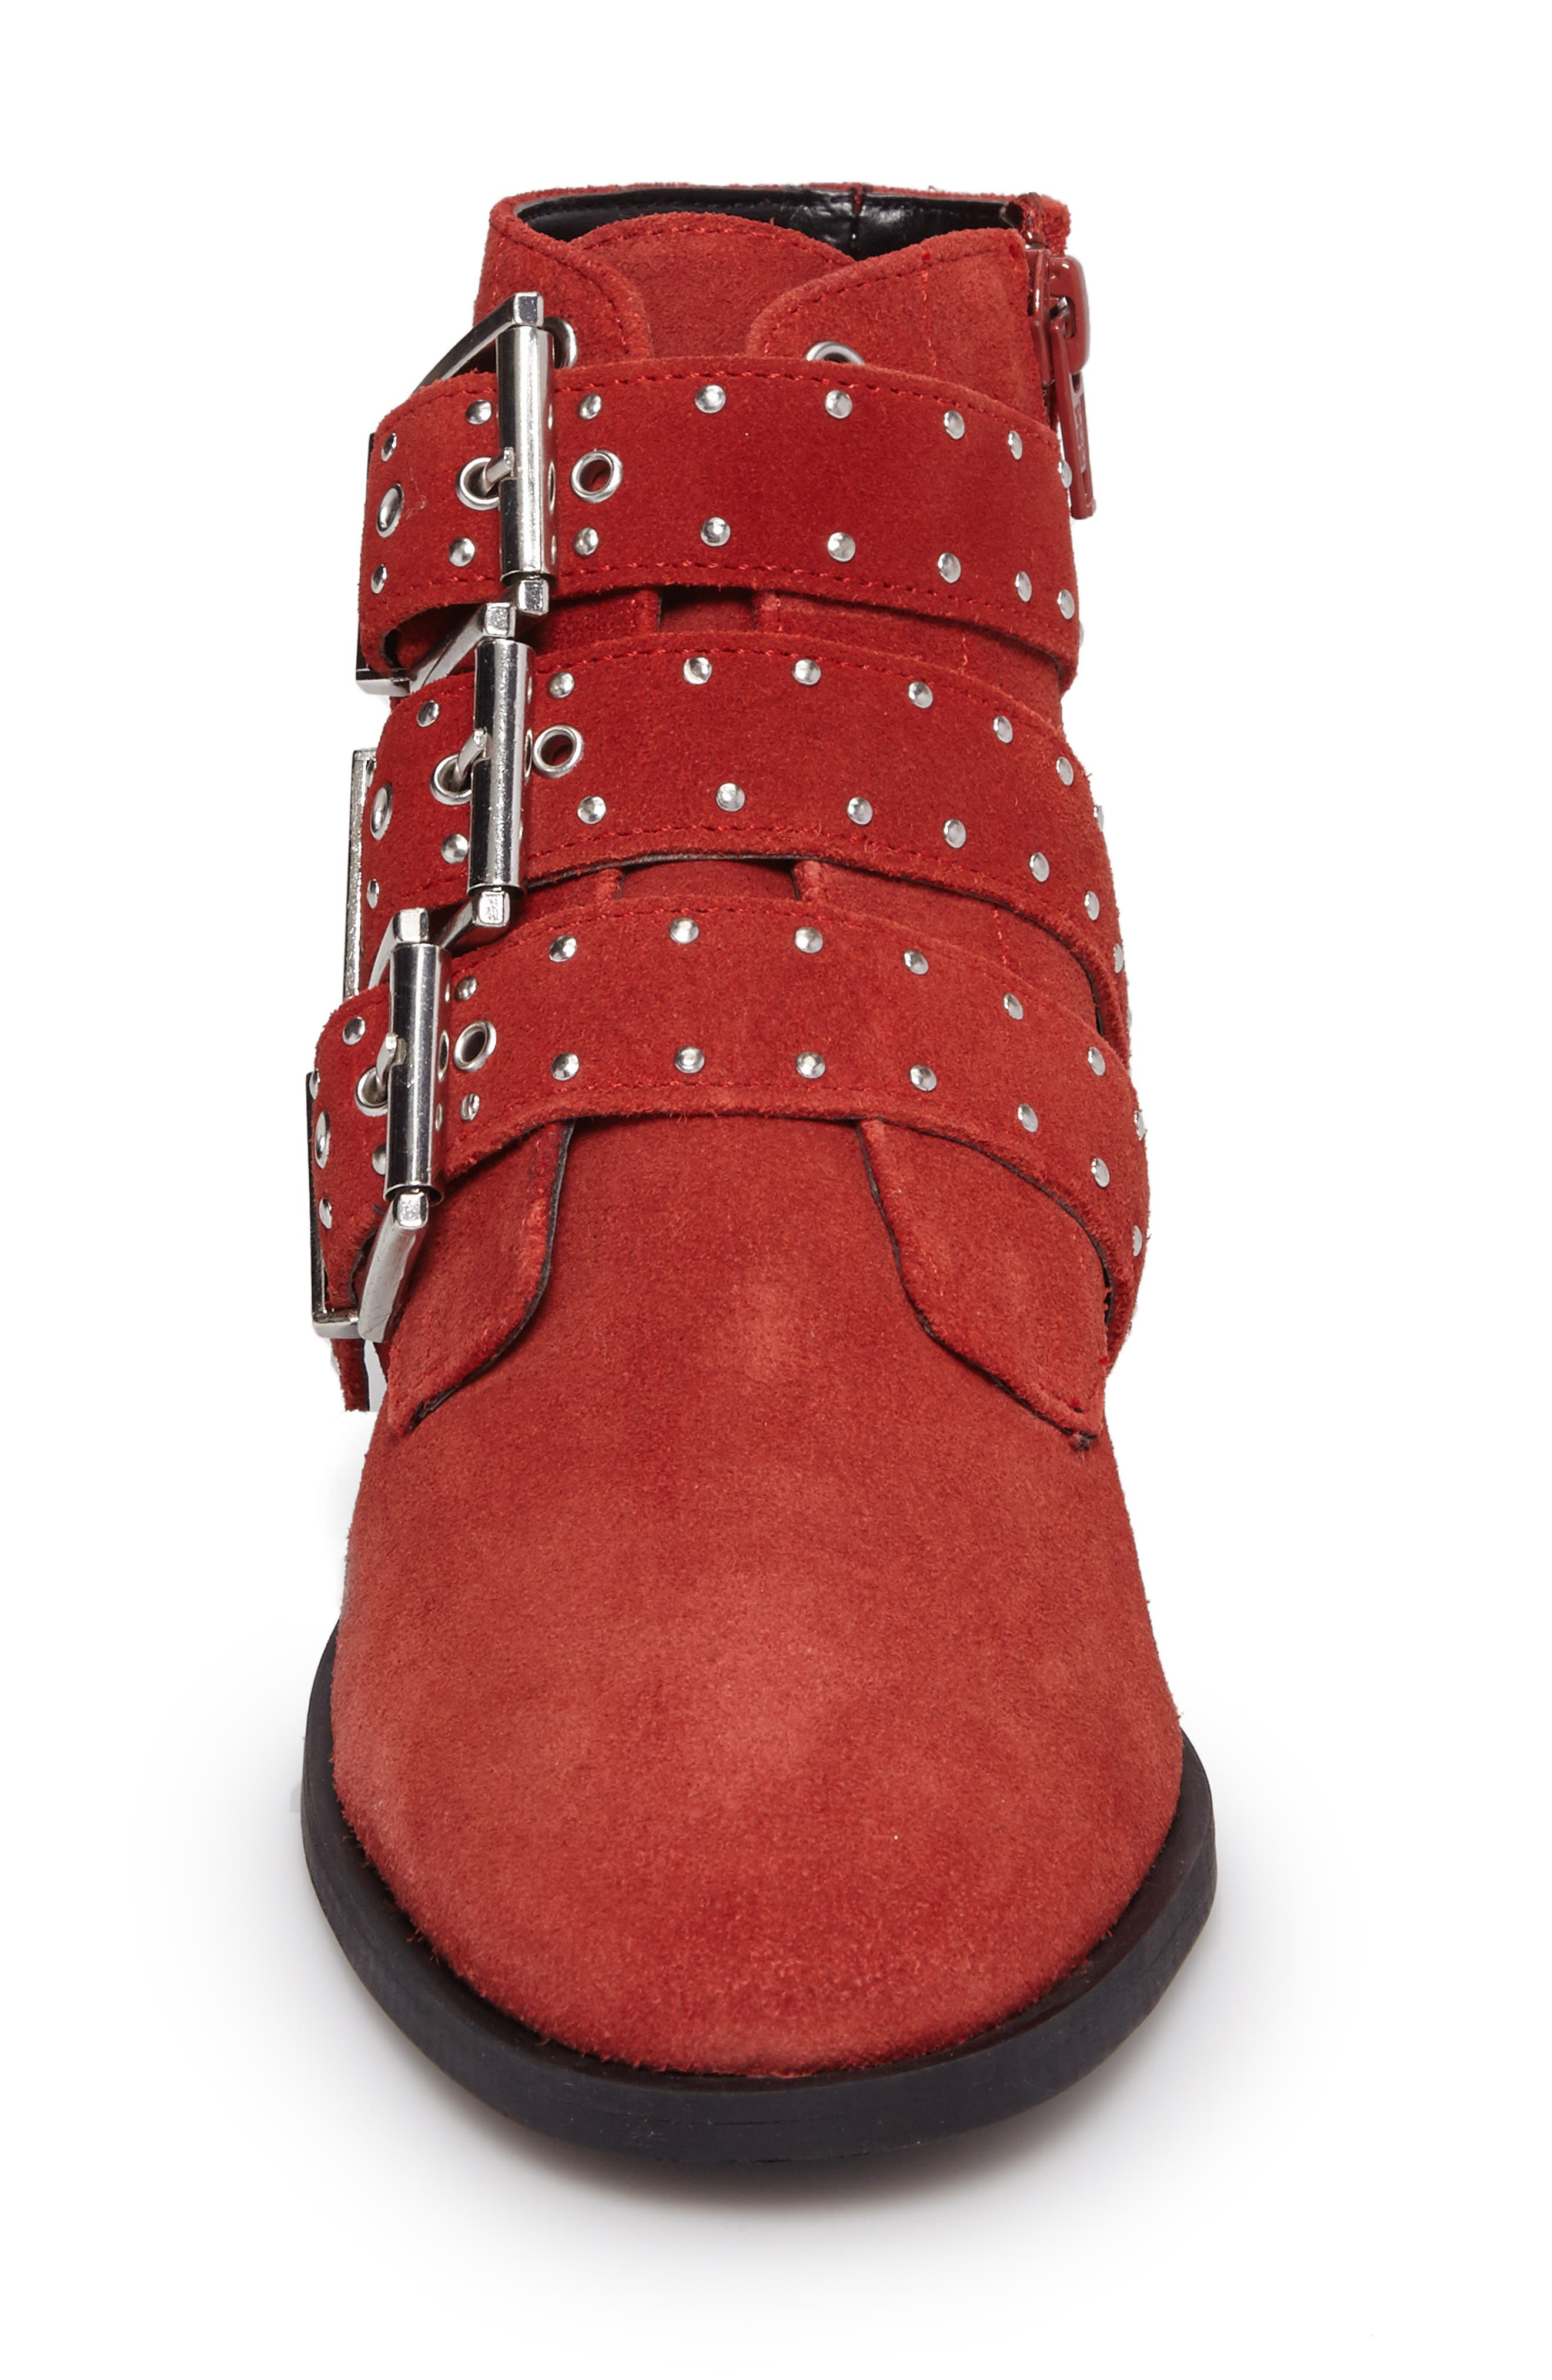 Krown Studded Bootie,                             Alternate thumbnail 4, color,                             Red